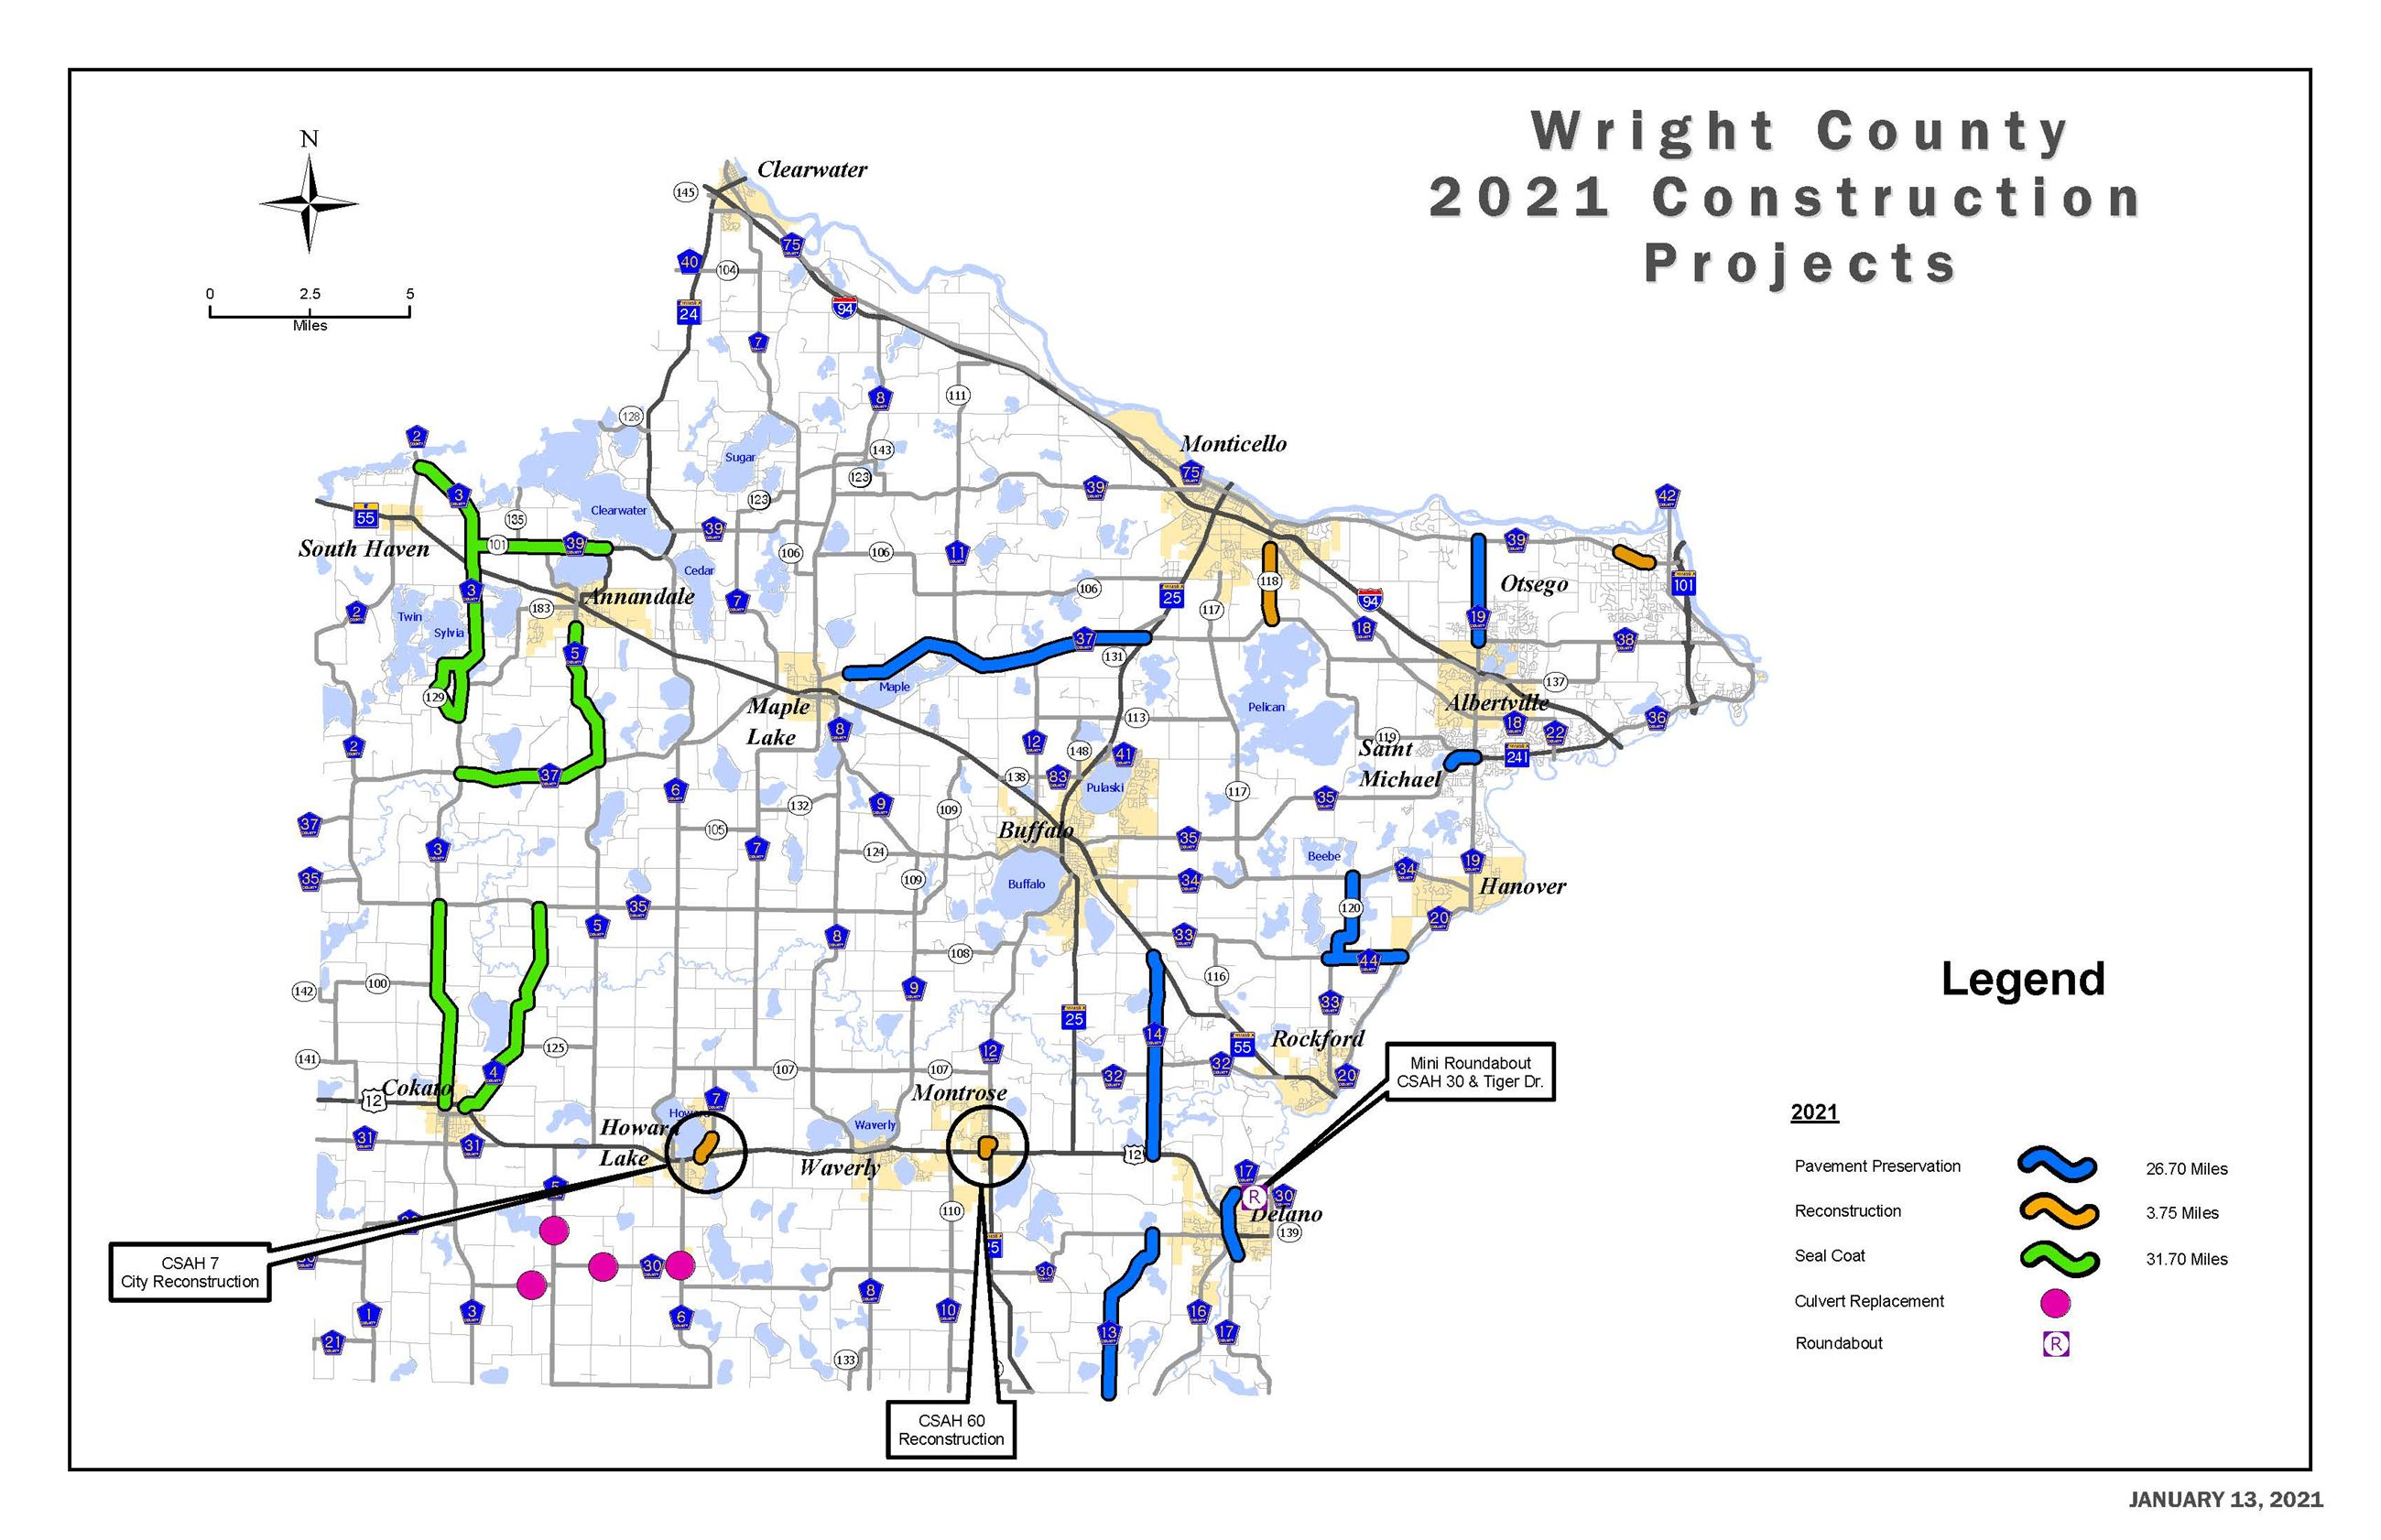 2021 Projects Map Opens in new window